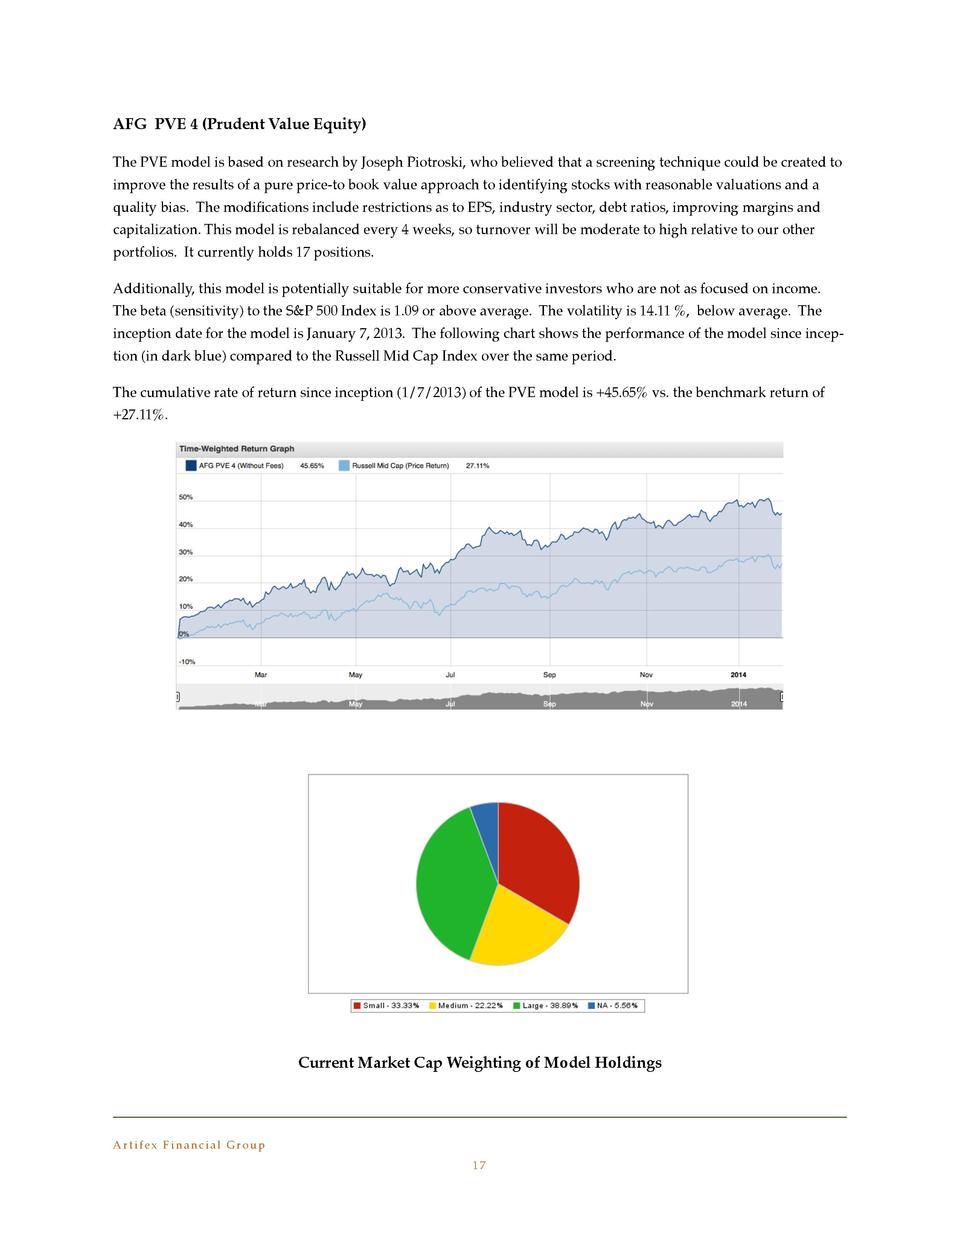 AFG PVE 4  Prudent Value Equity   The PVE model is based on research by Joseph Piotroski, who believed that a screening te...